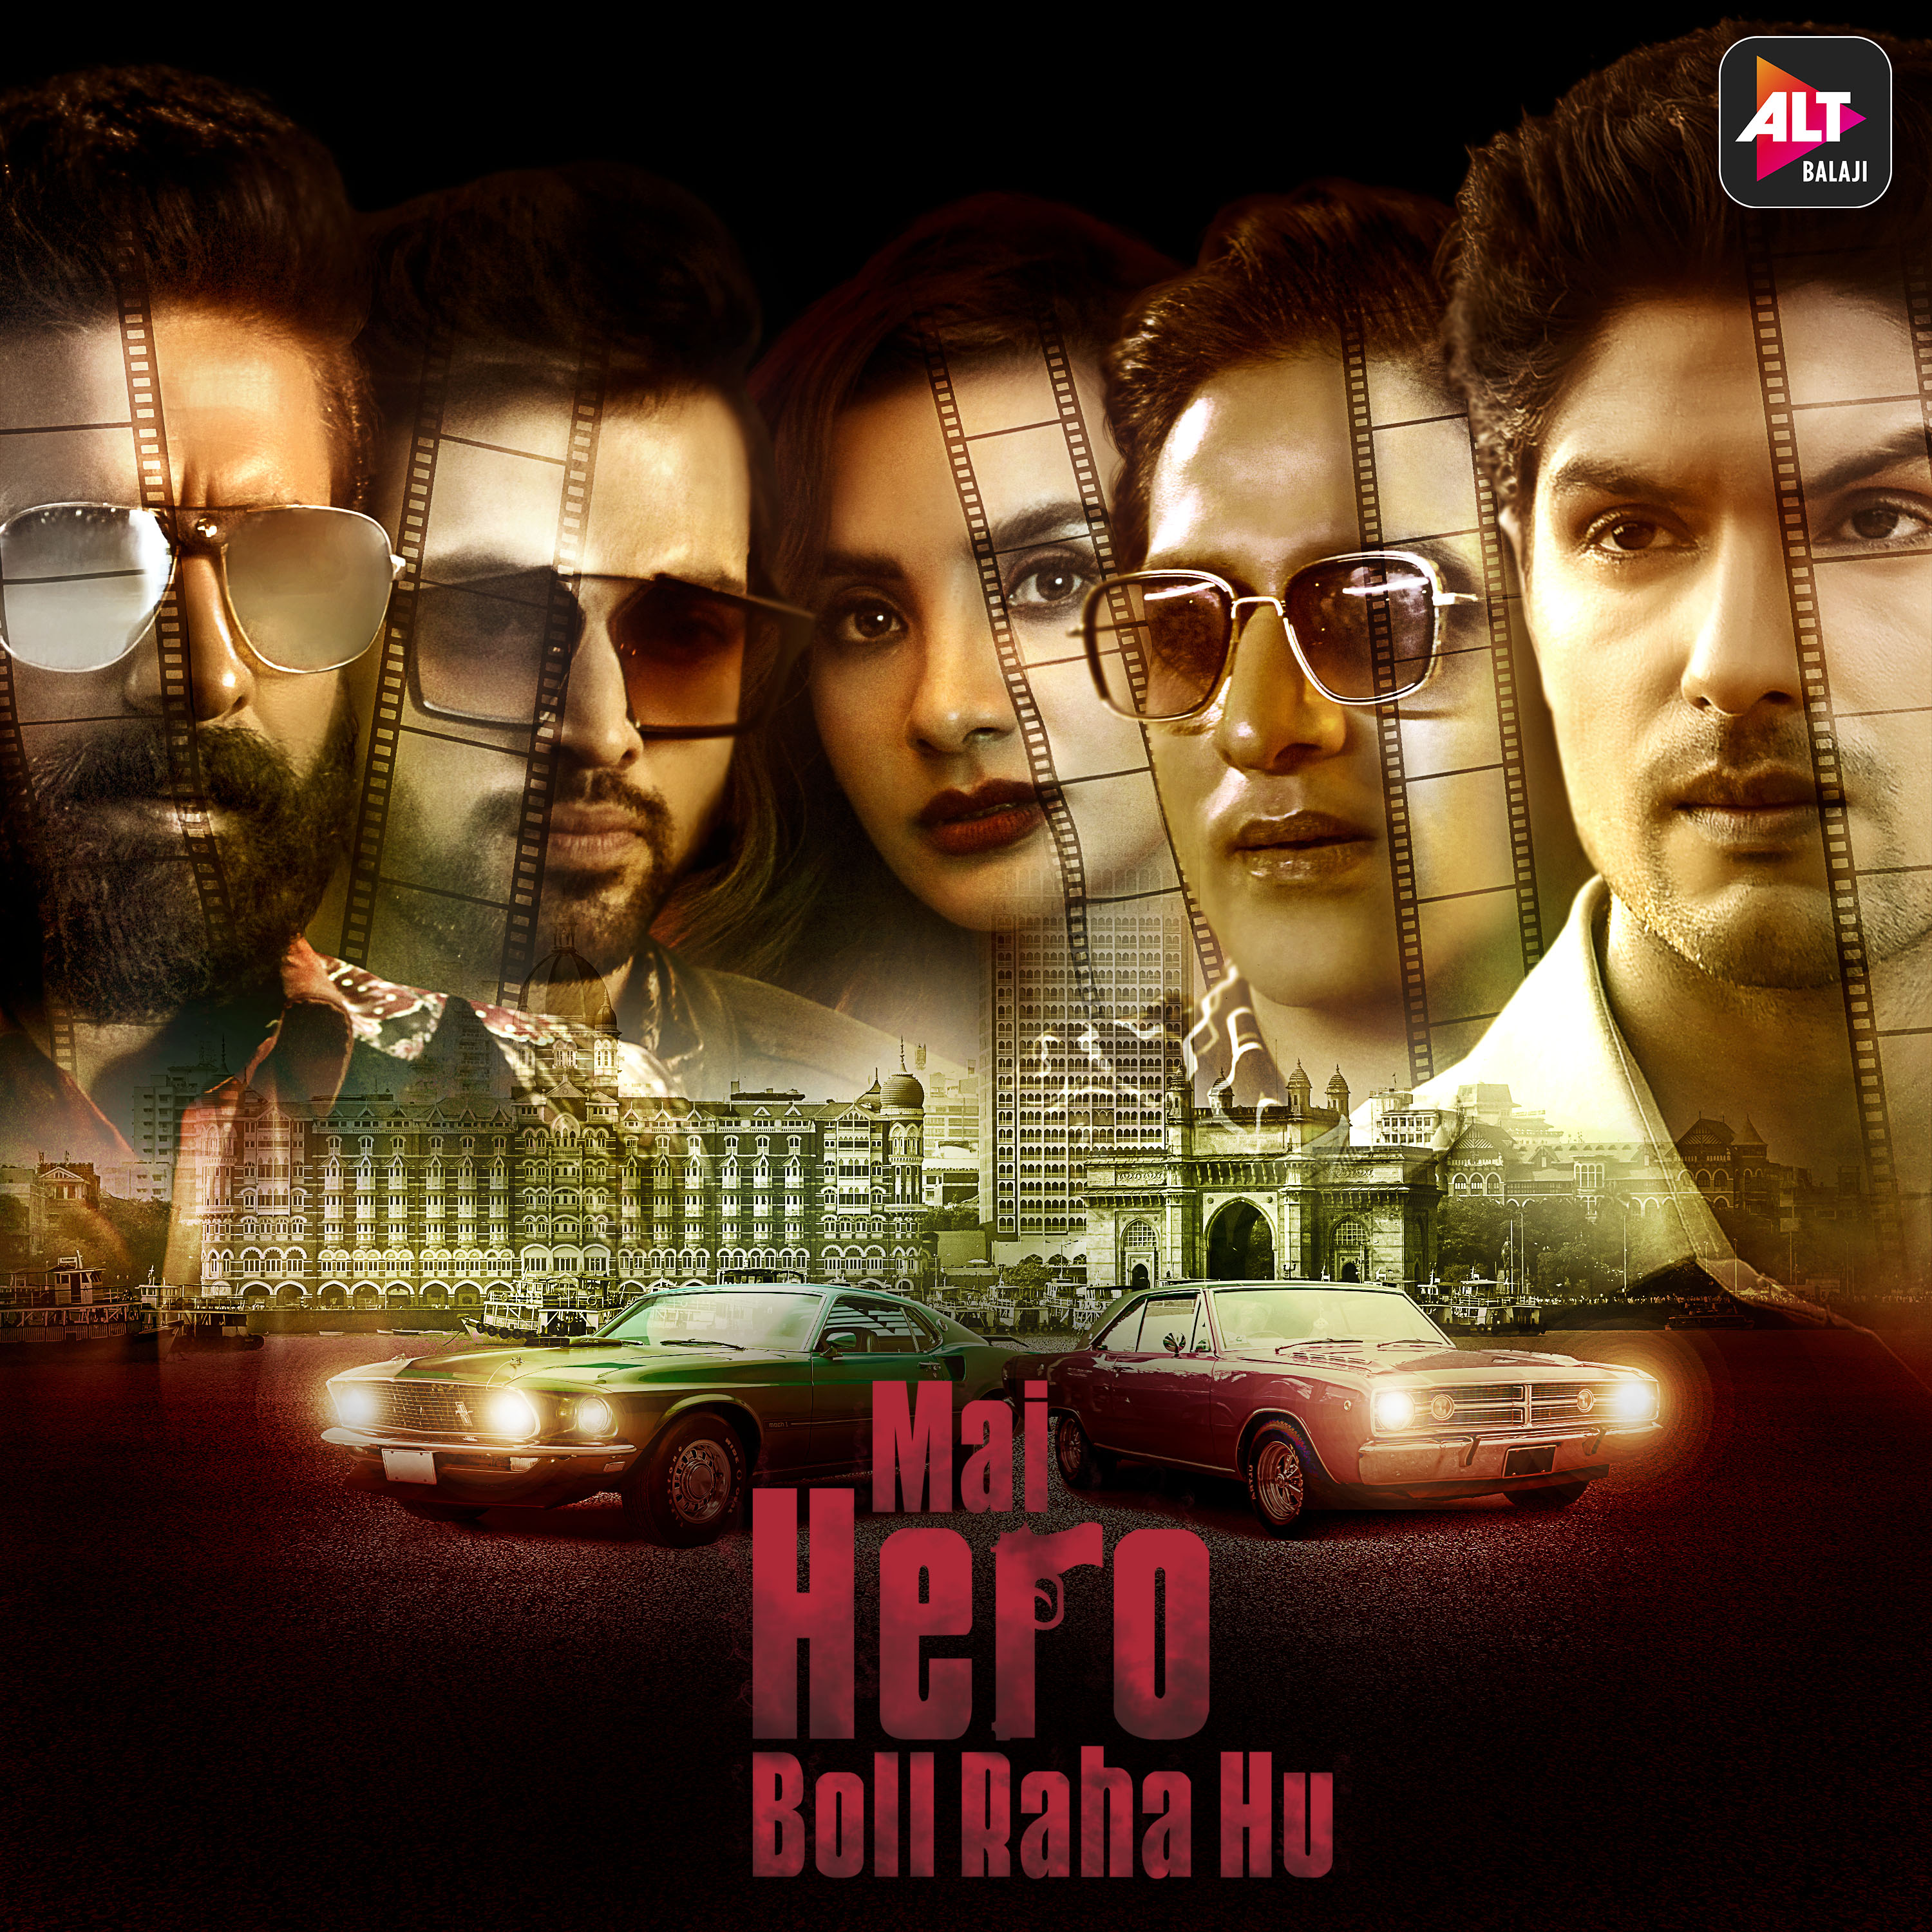 18+ Mai Hero Boll Raha hu 2021 S01 Hindi ALTBalaji Complete Web Series 1080p HDRip 3.5GB Download